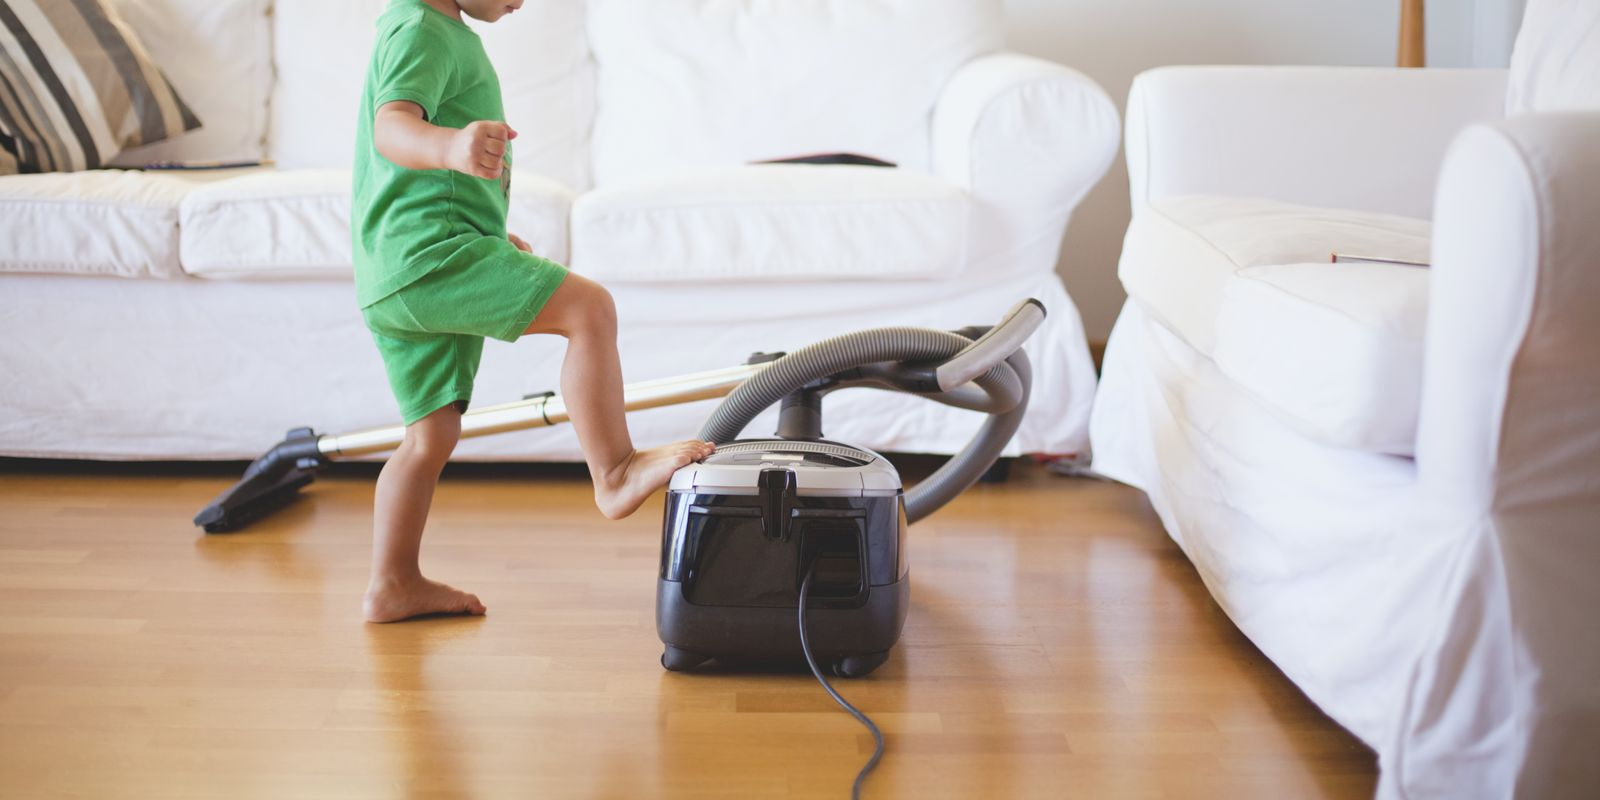 Vacuum Buying Guide How To Choose A Vacuum Cleaner